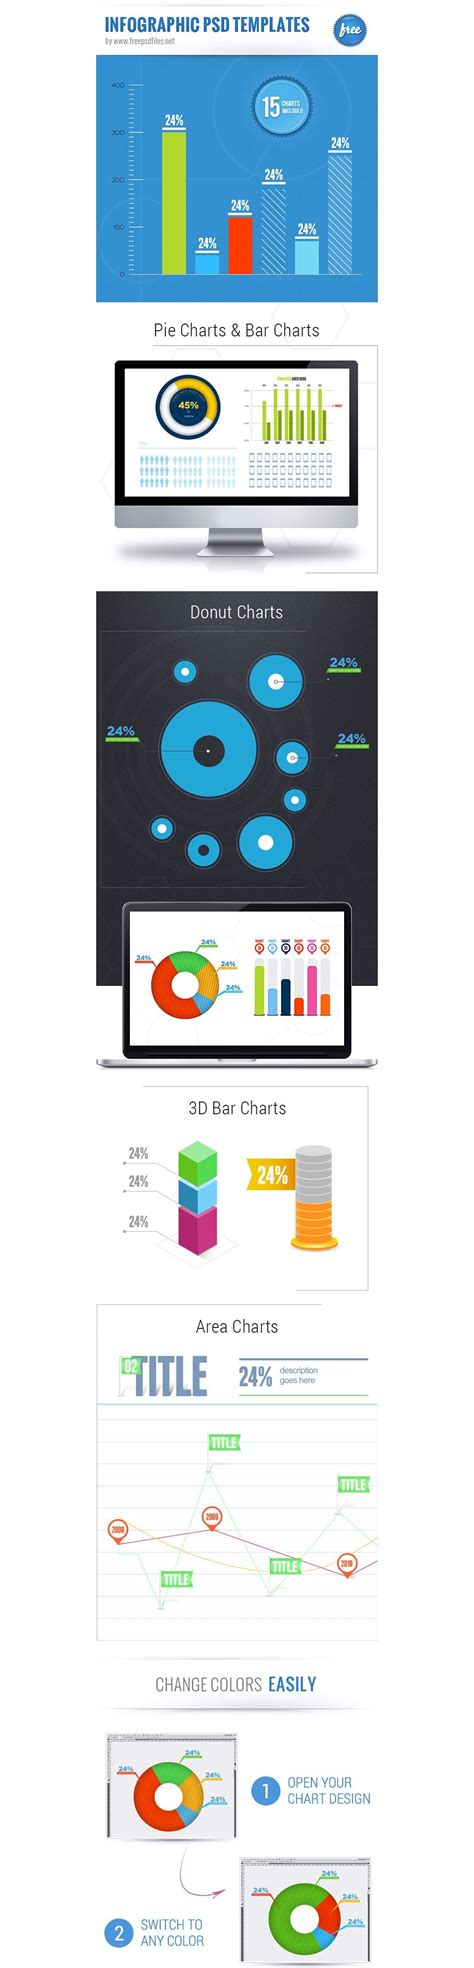 25 Best Free Infographic Elements 187 Css Author Infographic Template Psd